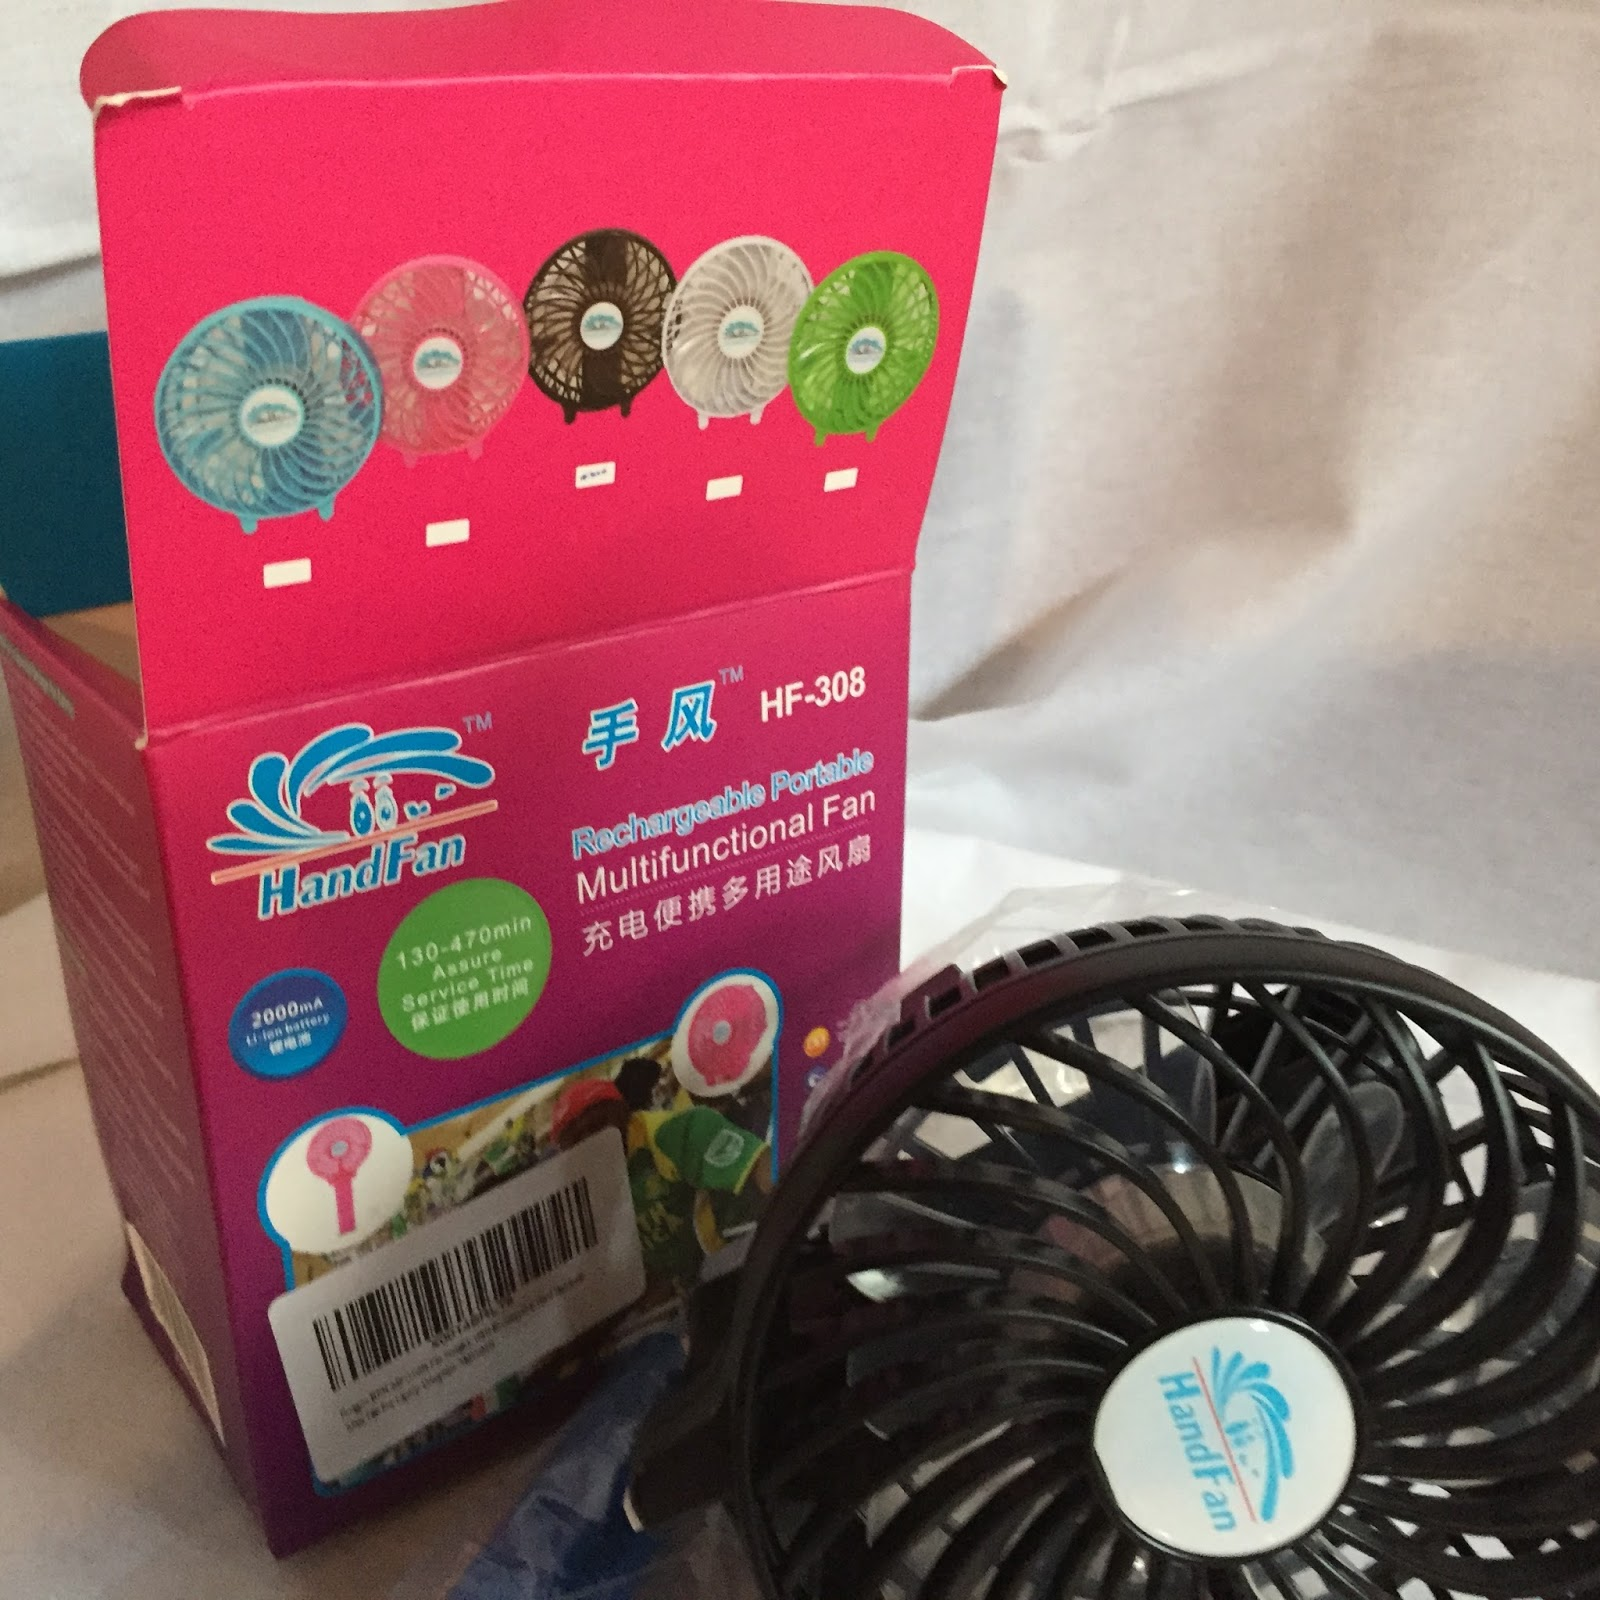 this is simple and useable in any household and you can be cool with this fan it also has three speeds ben office fan